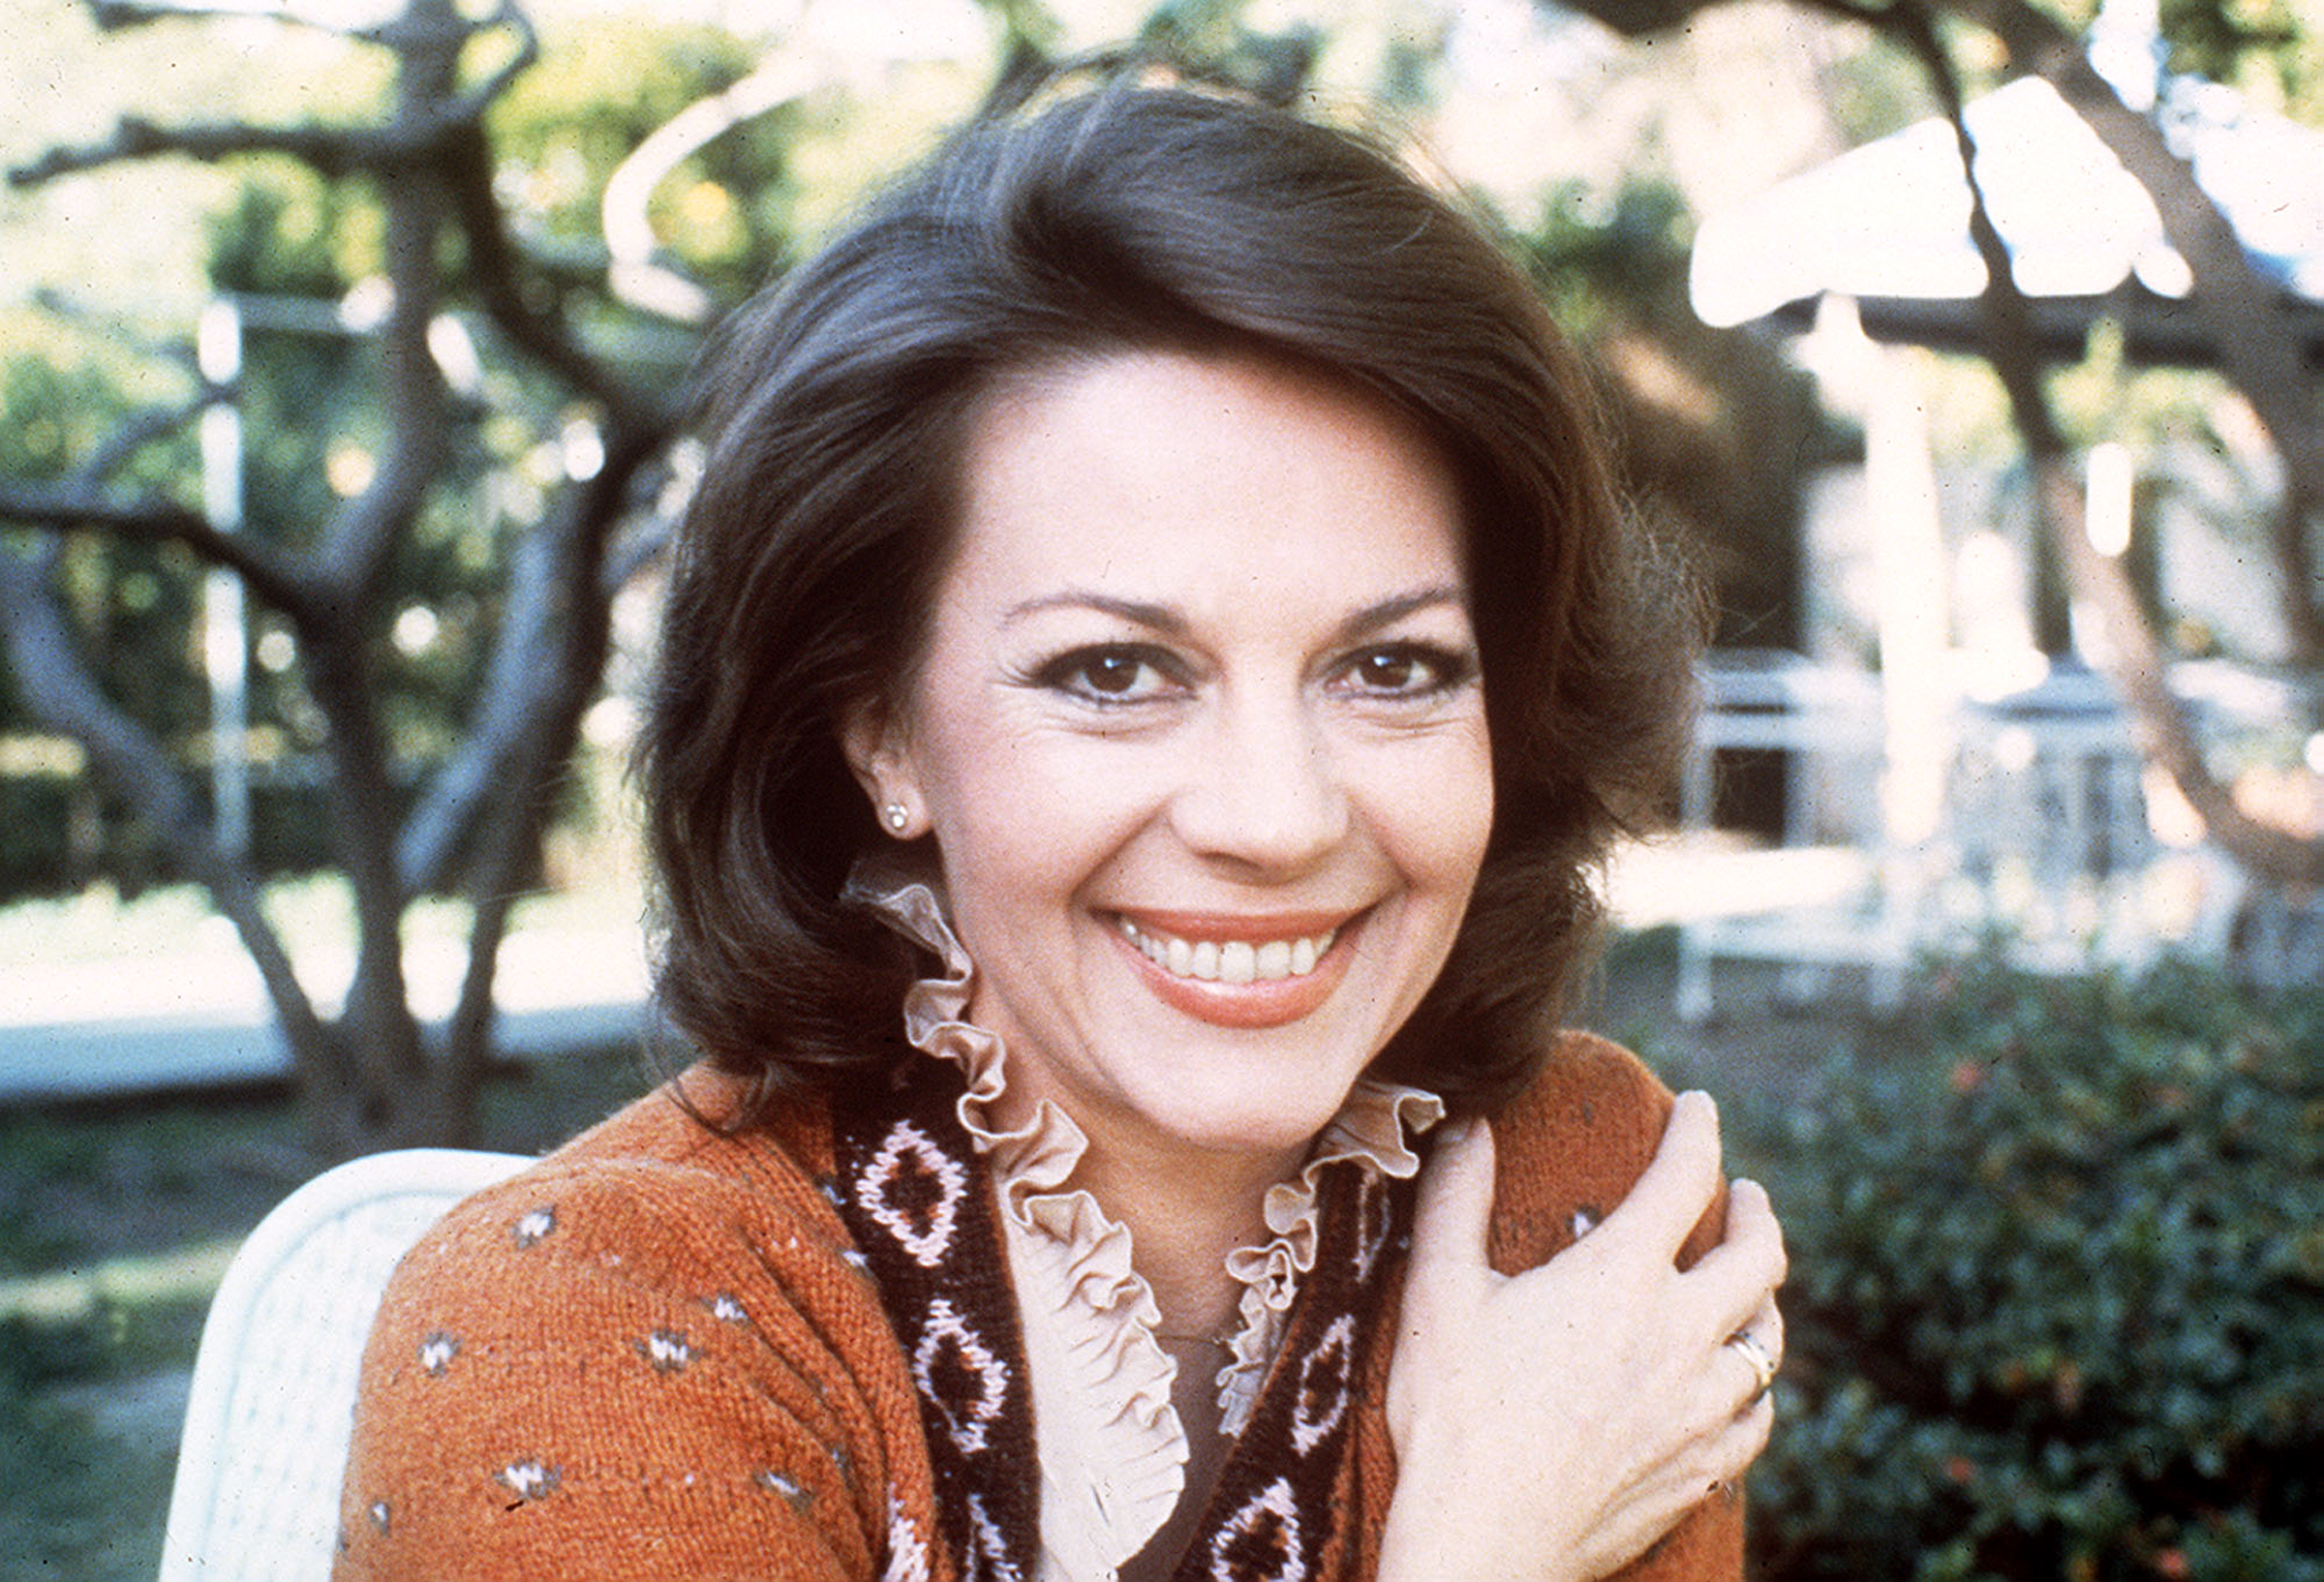 "CORRECTS DATE OF PHOTO TO JAN. 17, 1979 - FILE - This Jan. 17, 1979 file photo shows actress Natalie Wood. Investigators are now calling 87-year-old actor Robert Wagner a ""person of interest"" in the 1981 death of his wife Natalie Wood. Mystery has swirled around Wood's death. It was declared an accident but police reopened the case in 2011 to see whether Wagner or anyone else played a role. (AP Photo/File)"